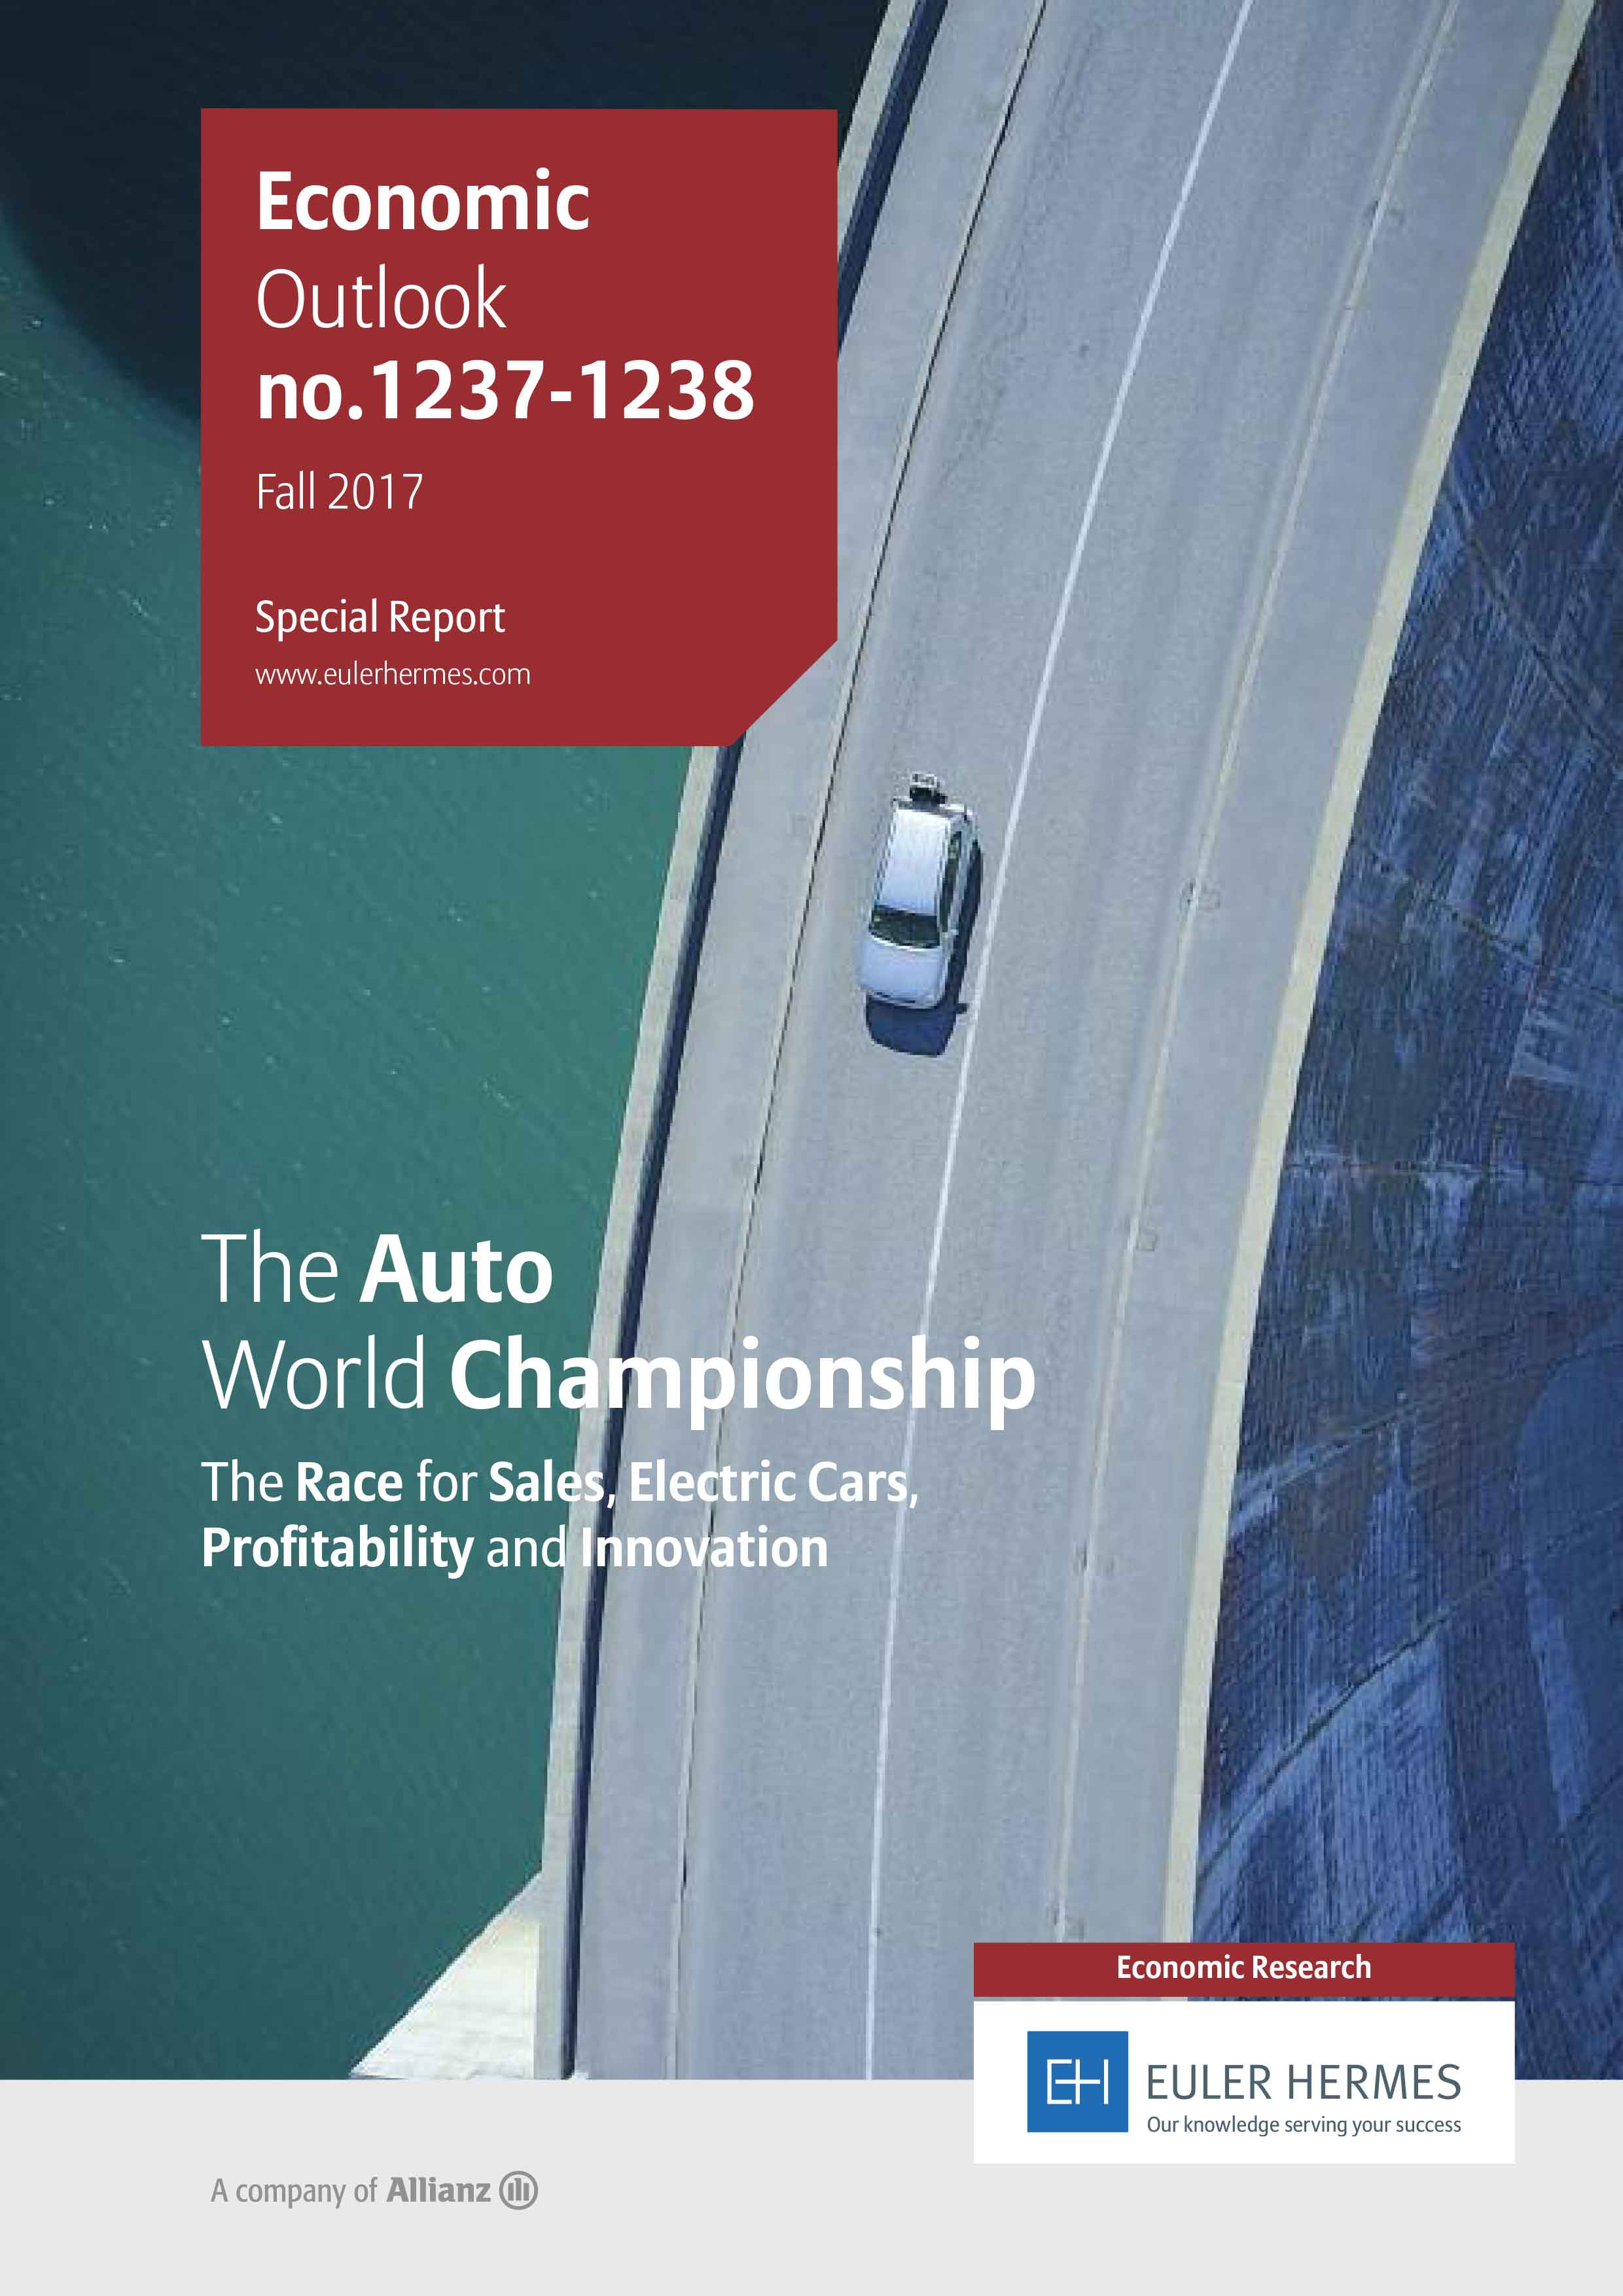 Economic OutlooThe Auto World Championship - The Race for Sales, Electric Cars, Profitability and Innovationk - The Auto World Championship